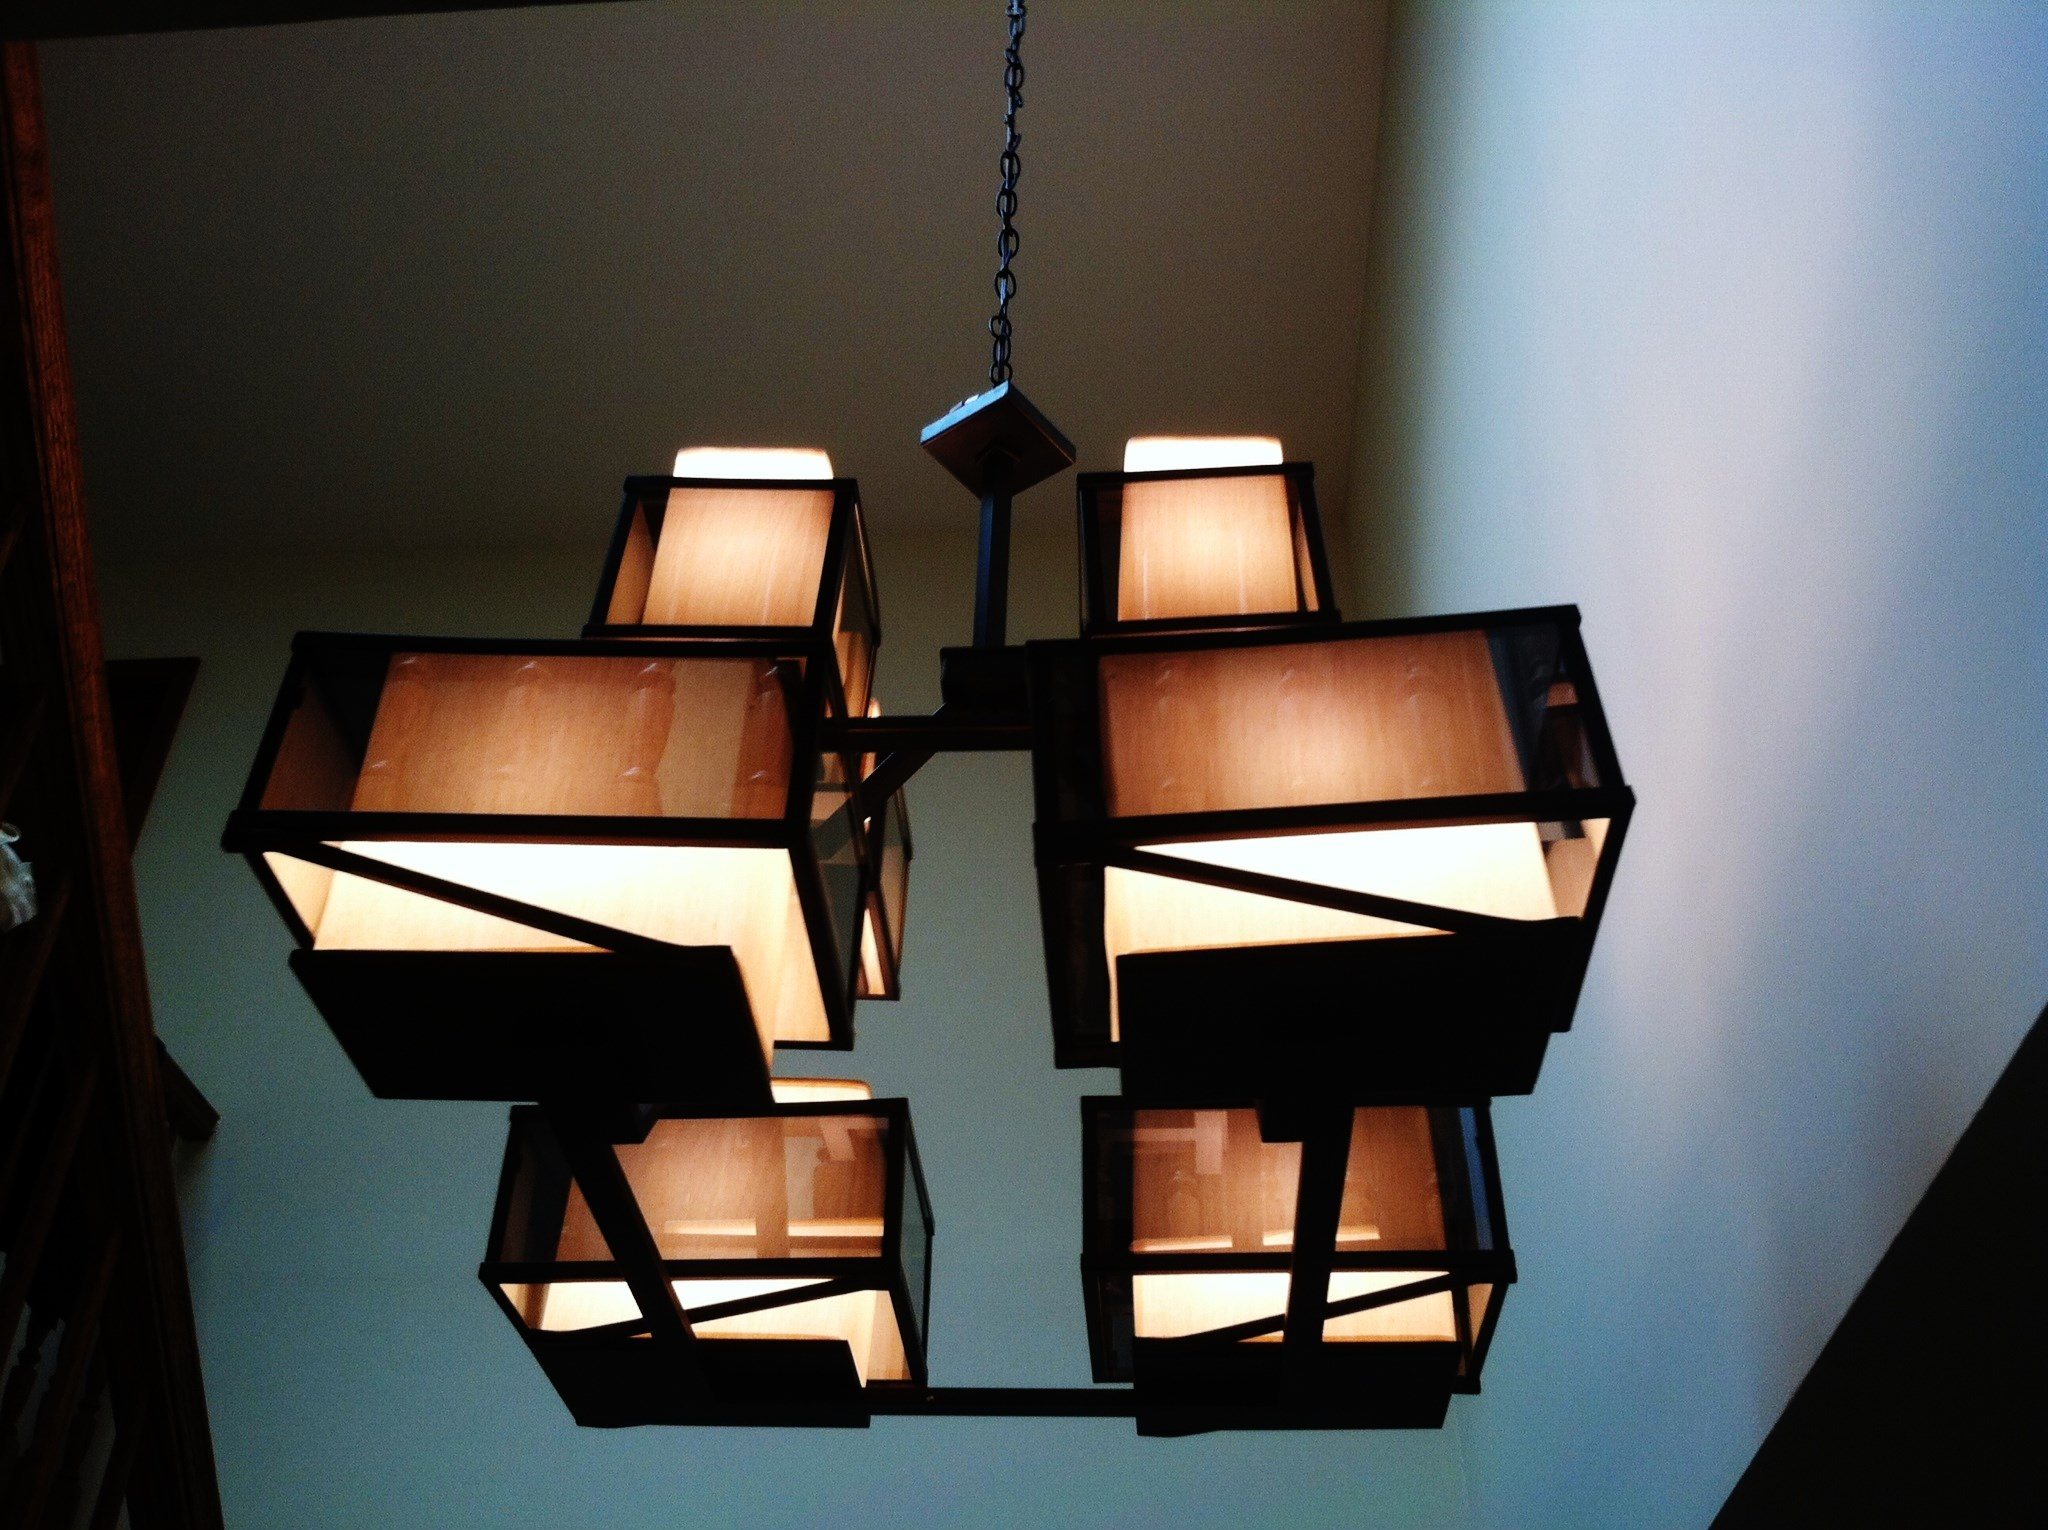 Custom Lighting Installations - residential electrician services